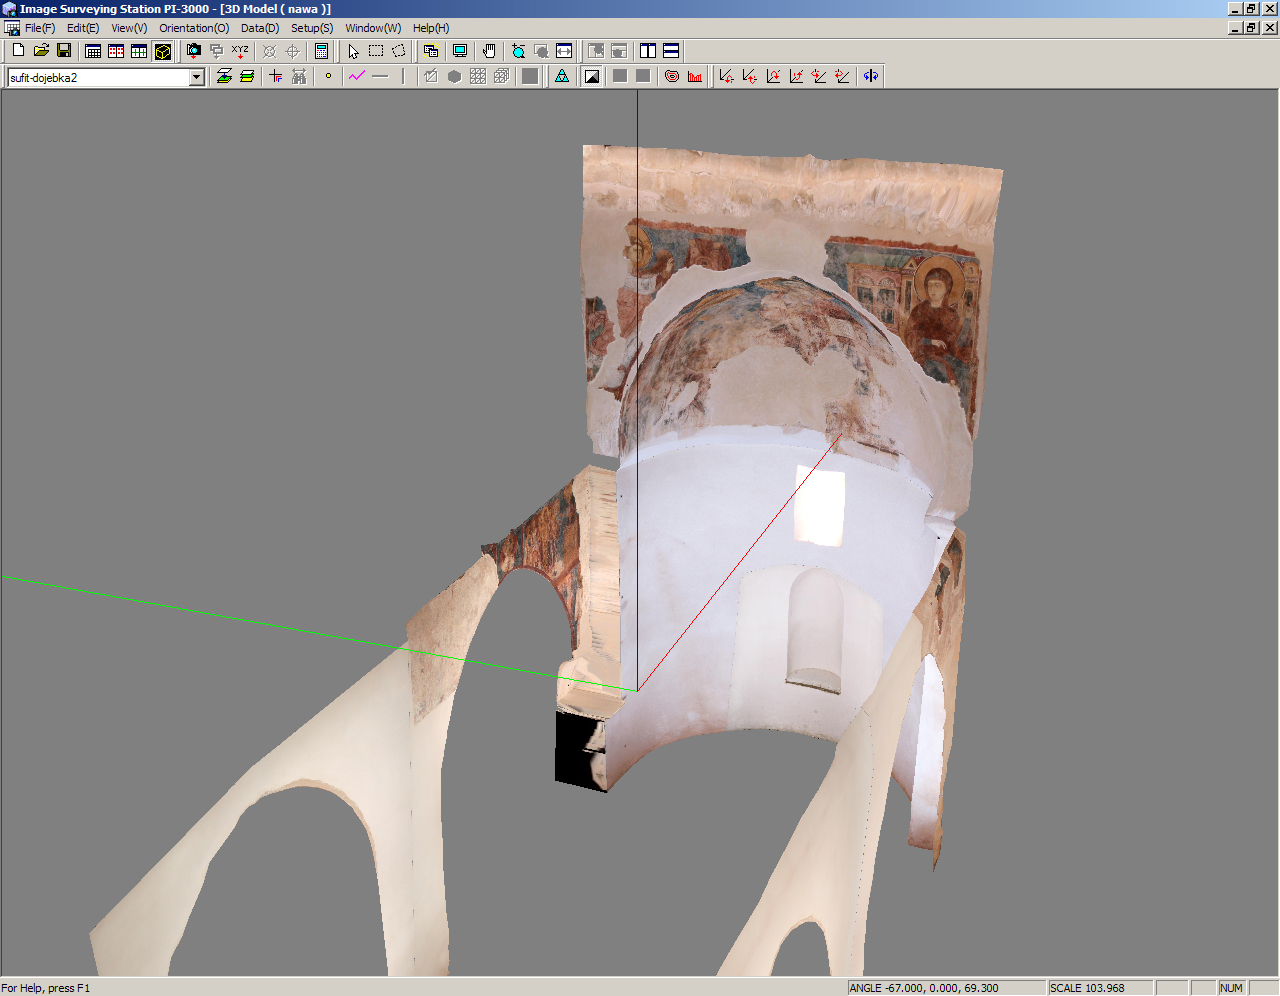 Fig. 10: 3-D model of the interior of the church with paintings (Waliszewski and Chmielewski 2009–2010)